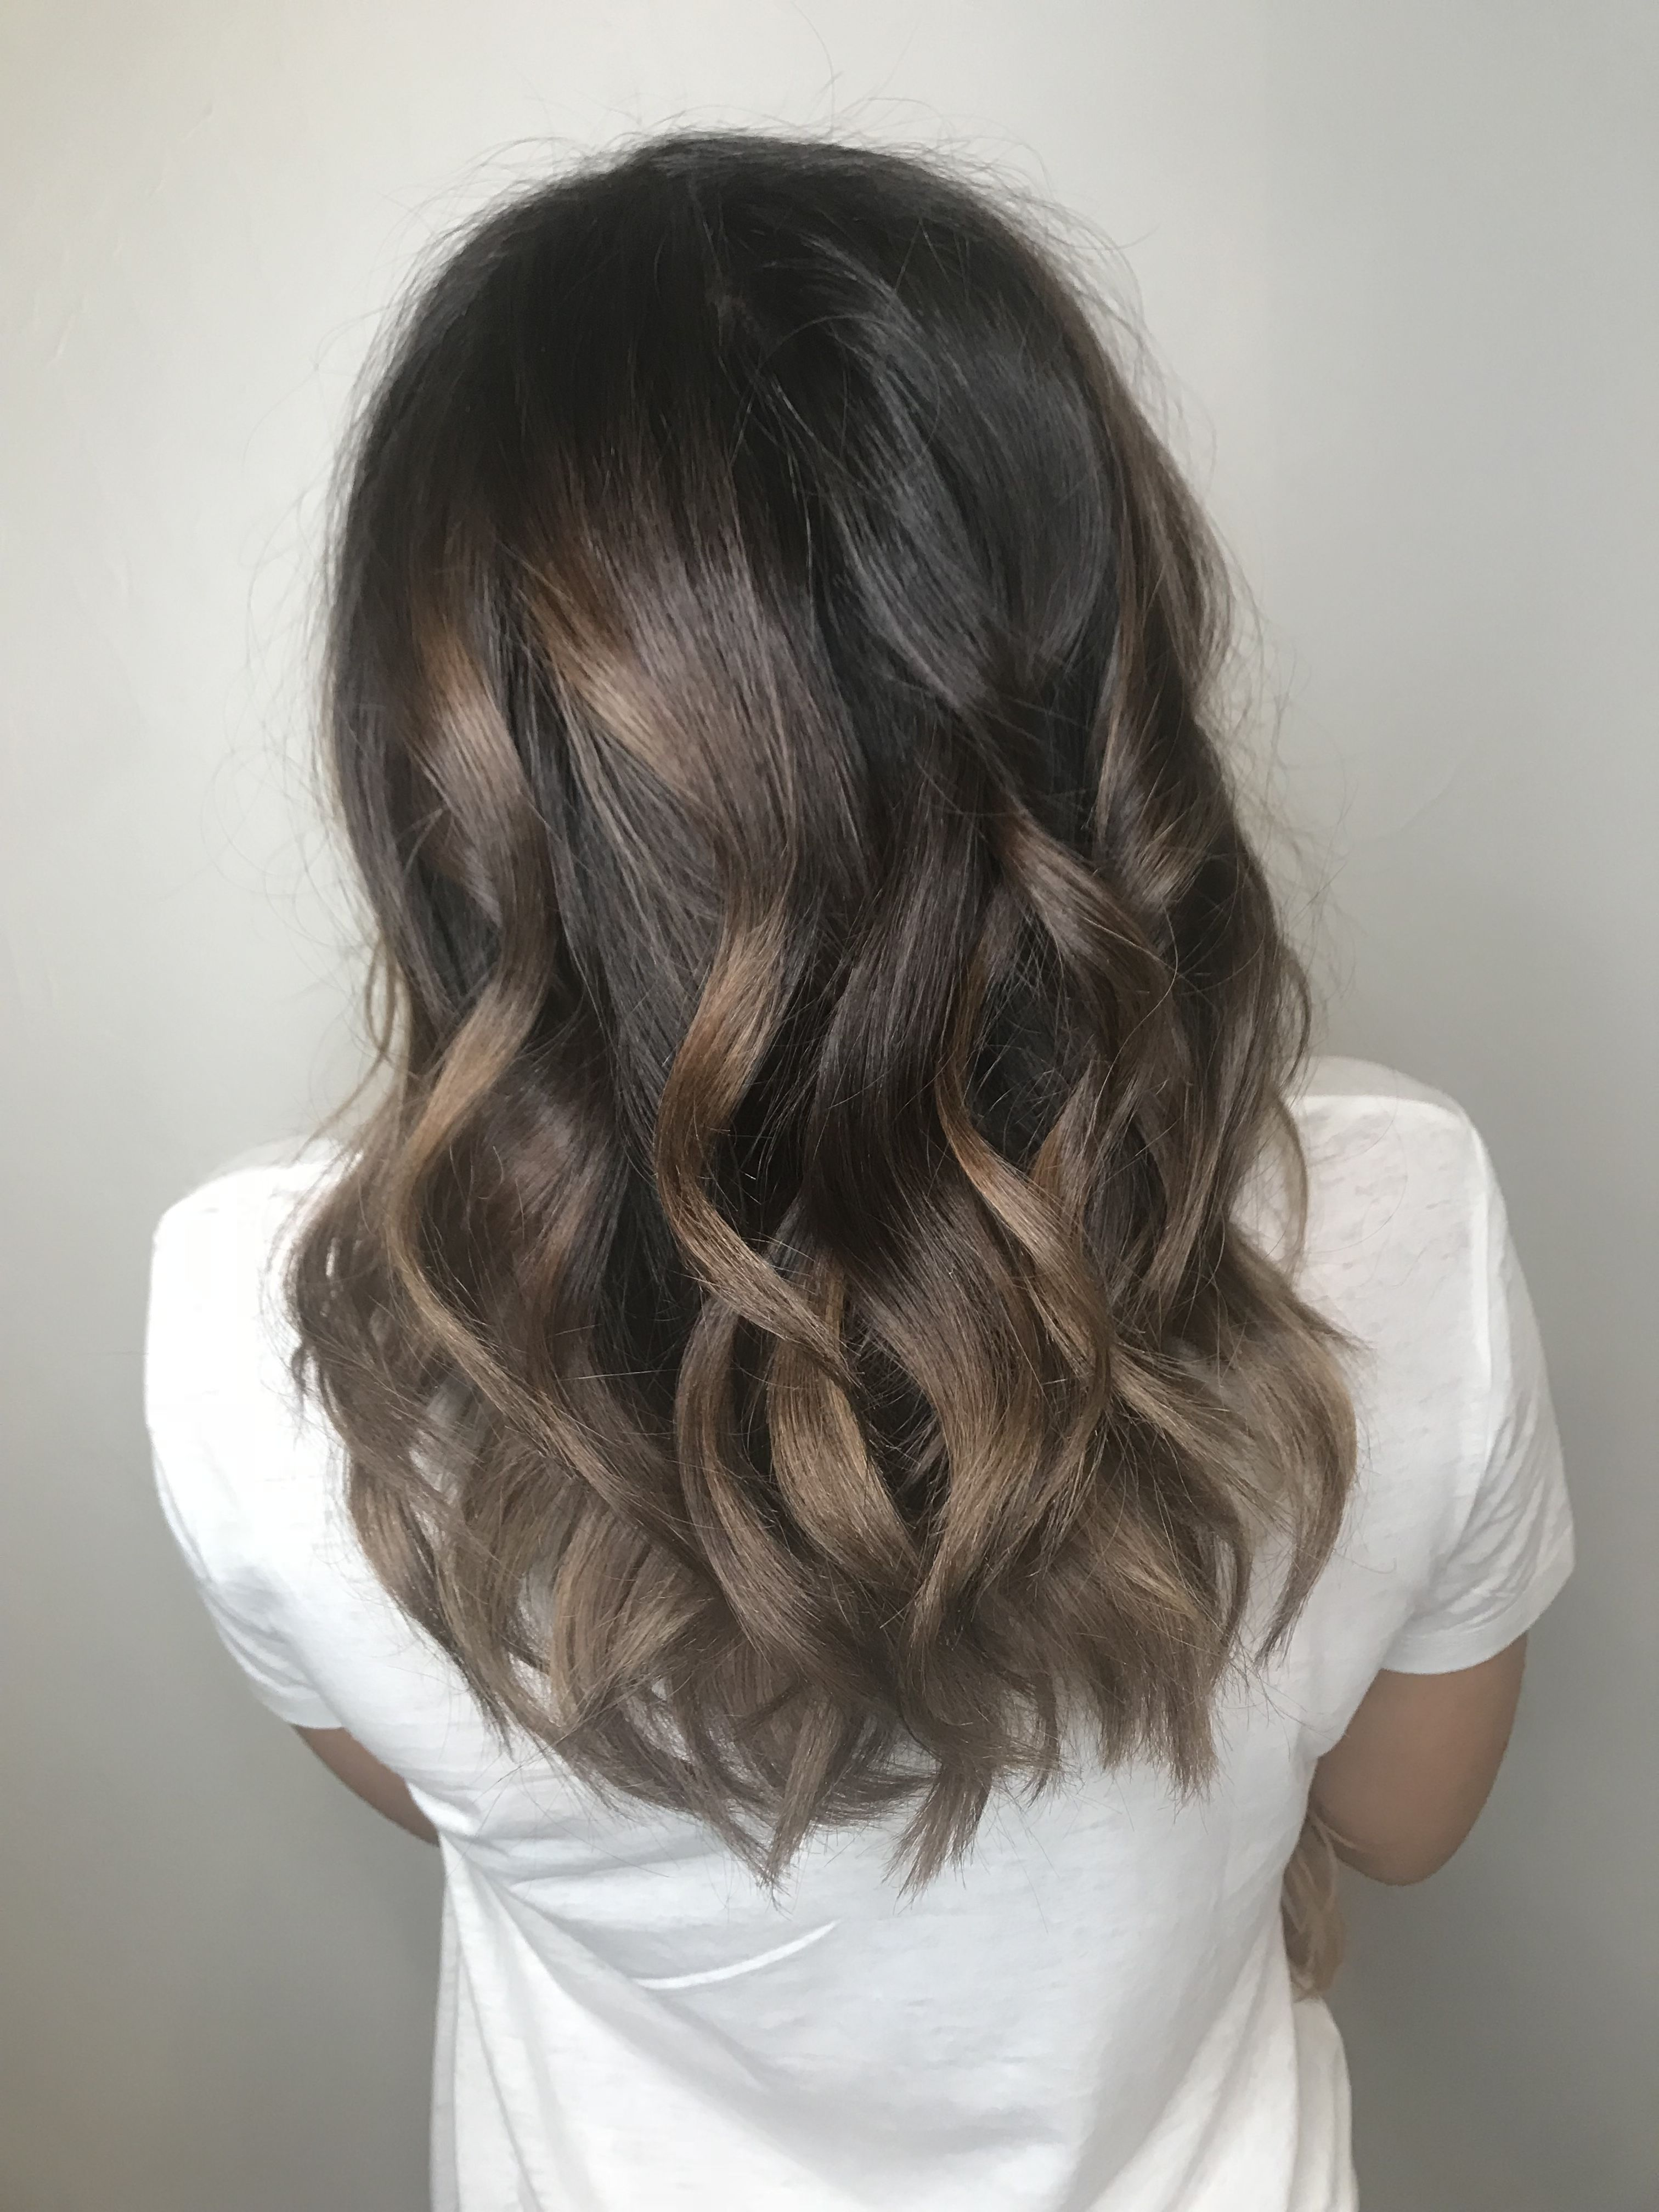 Beautiful Rich Brunette Color Done At Zoya Salon In Addison Texas Color 972 930 9953 Neutral Ringette Cool Bru Brunette Color Rich Brunette Medium Ombre Hair